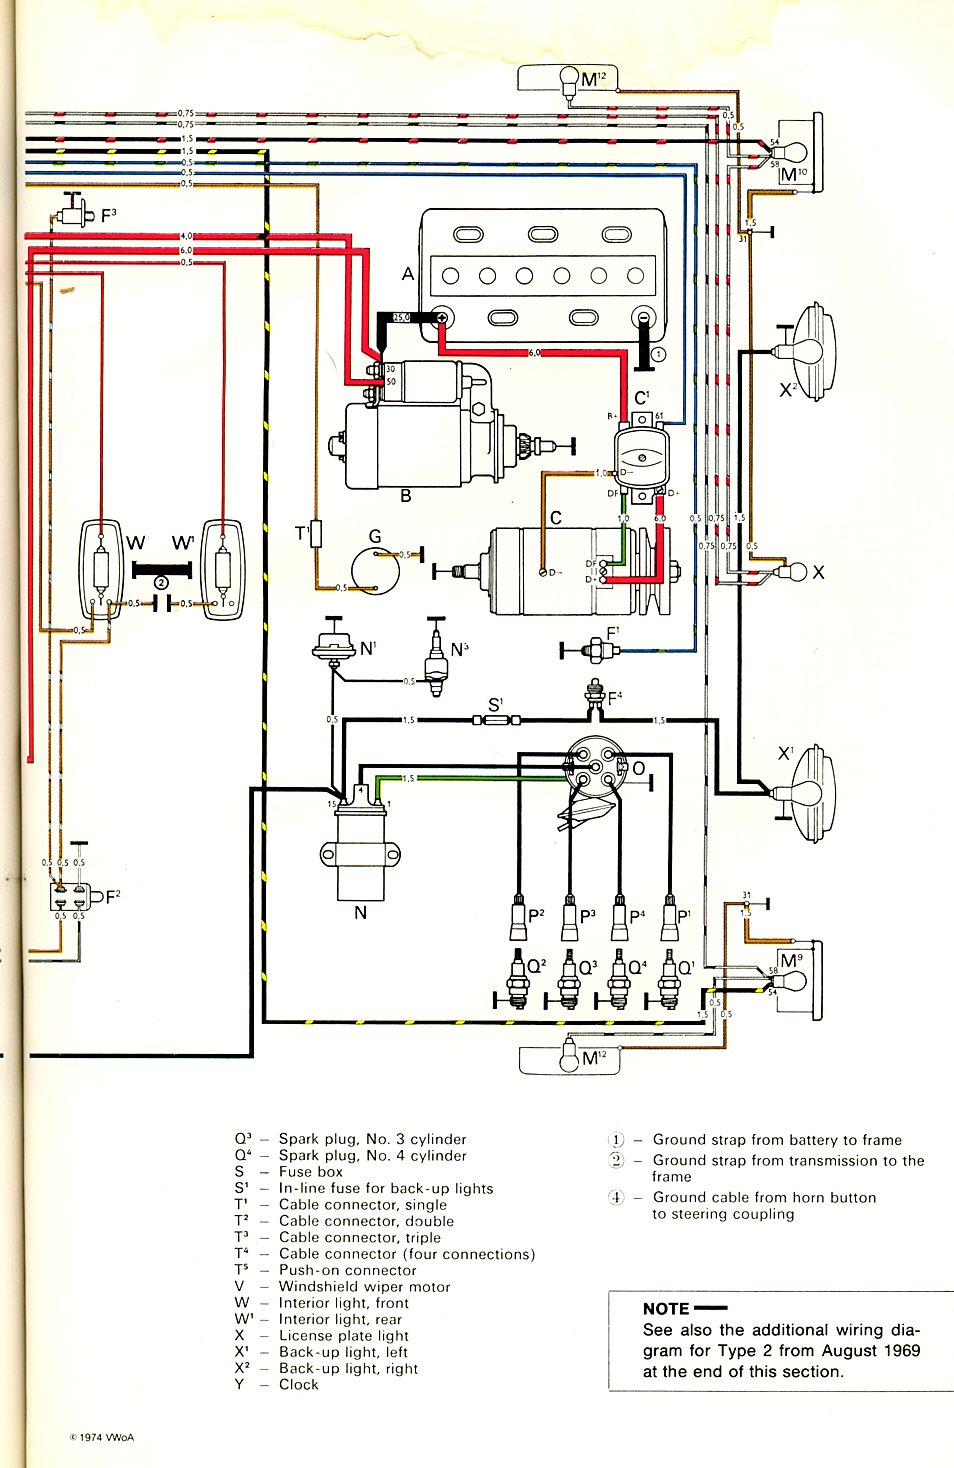 baybus_70b thesamba com type 2 wiring diagrams vw wiring diagrams at couponss.co